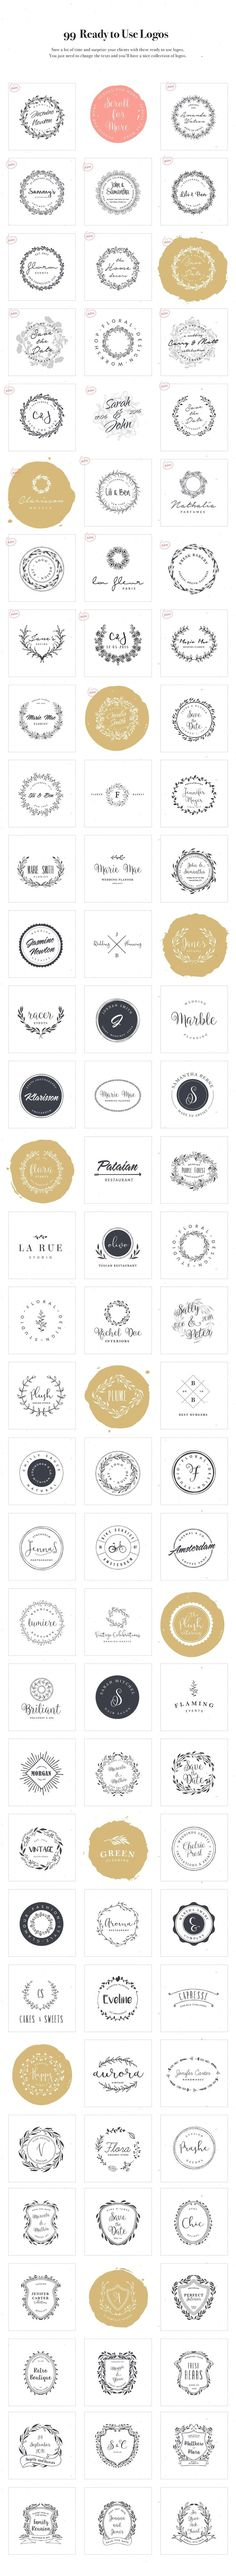 Logo Design Kit by VladCristea on @creativemarket Creative logo design inspiration, perfect for a modern business branding with perfect font and typography selection. Take some ideas or use this feminine, elegant, nature, floral and also hipster set.